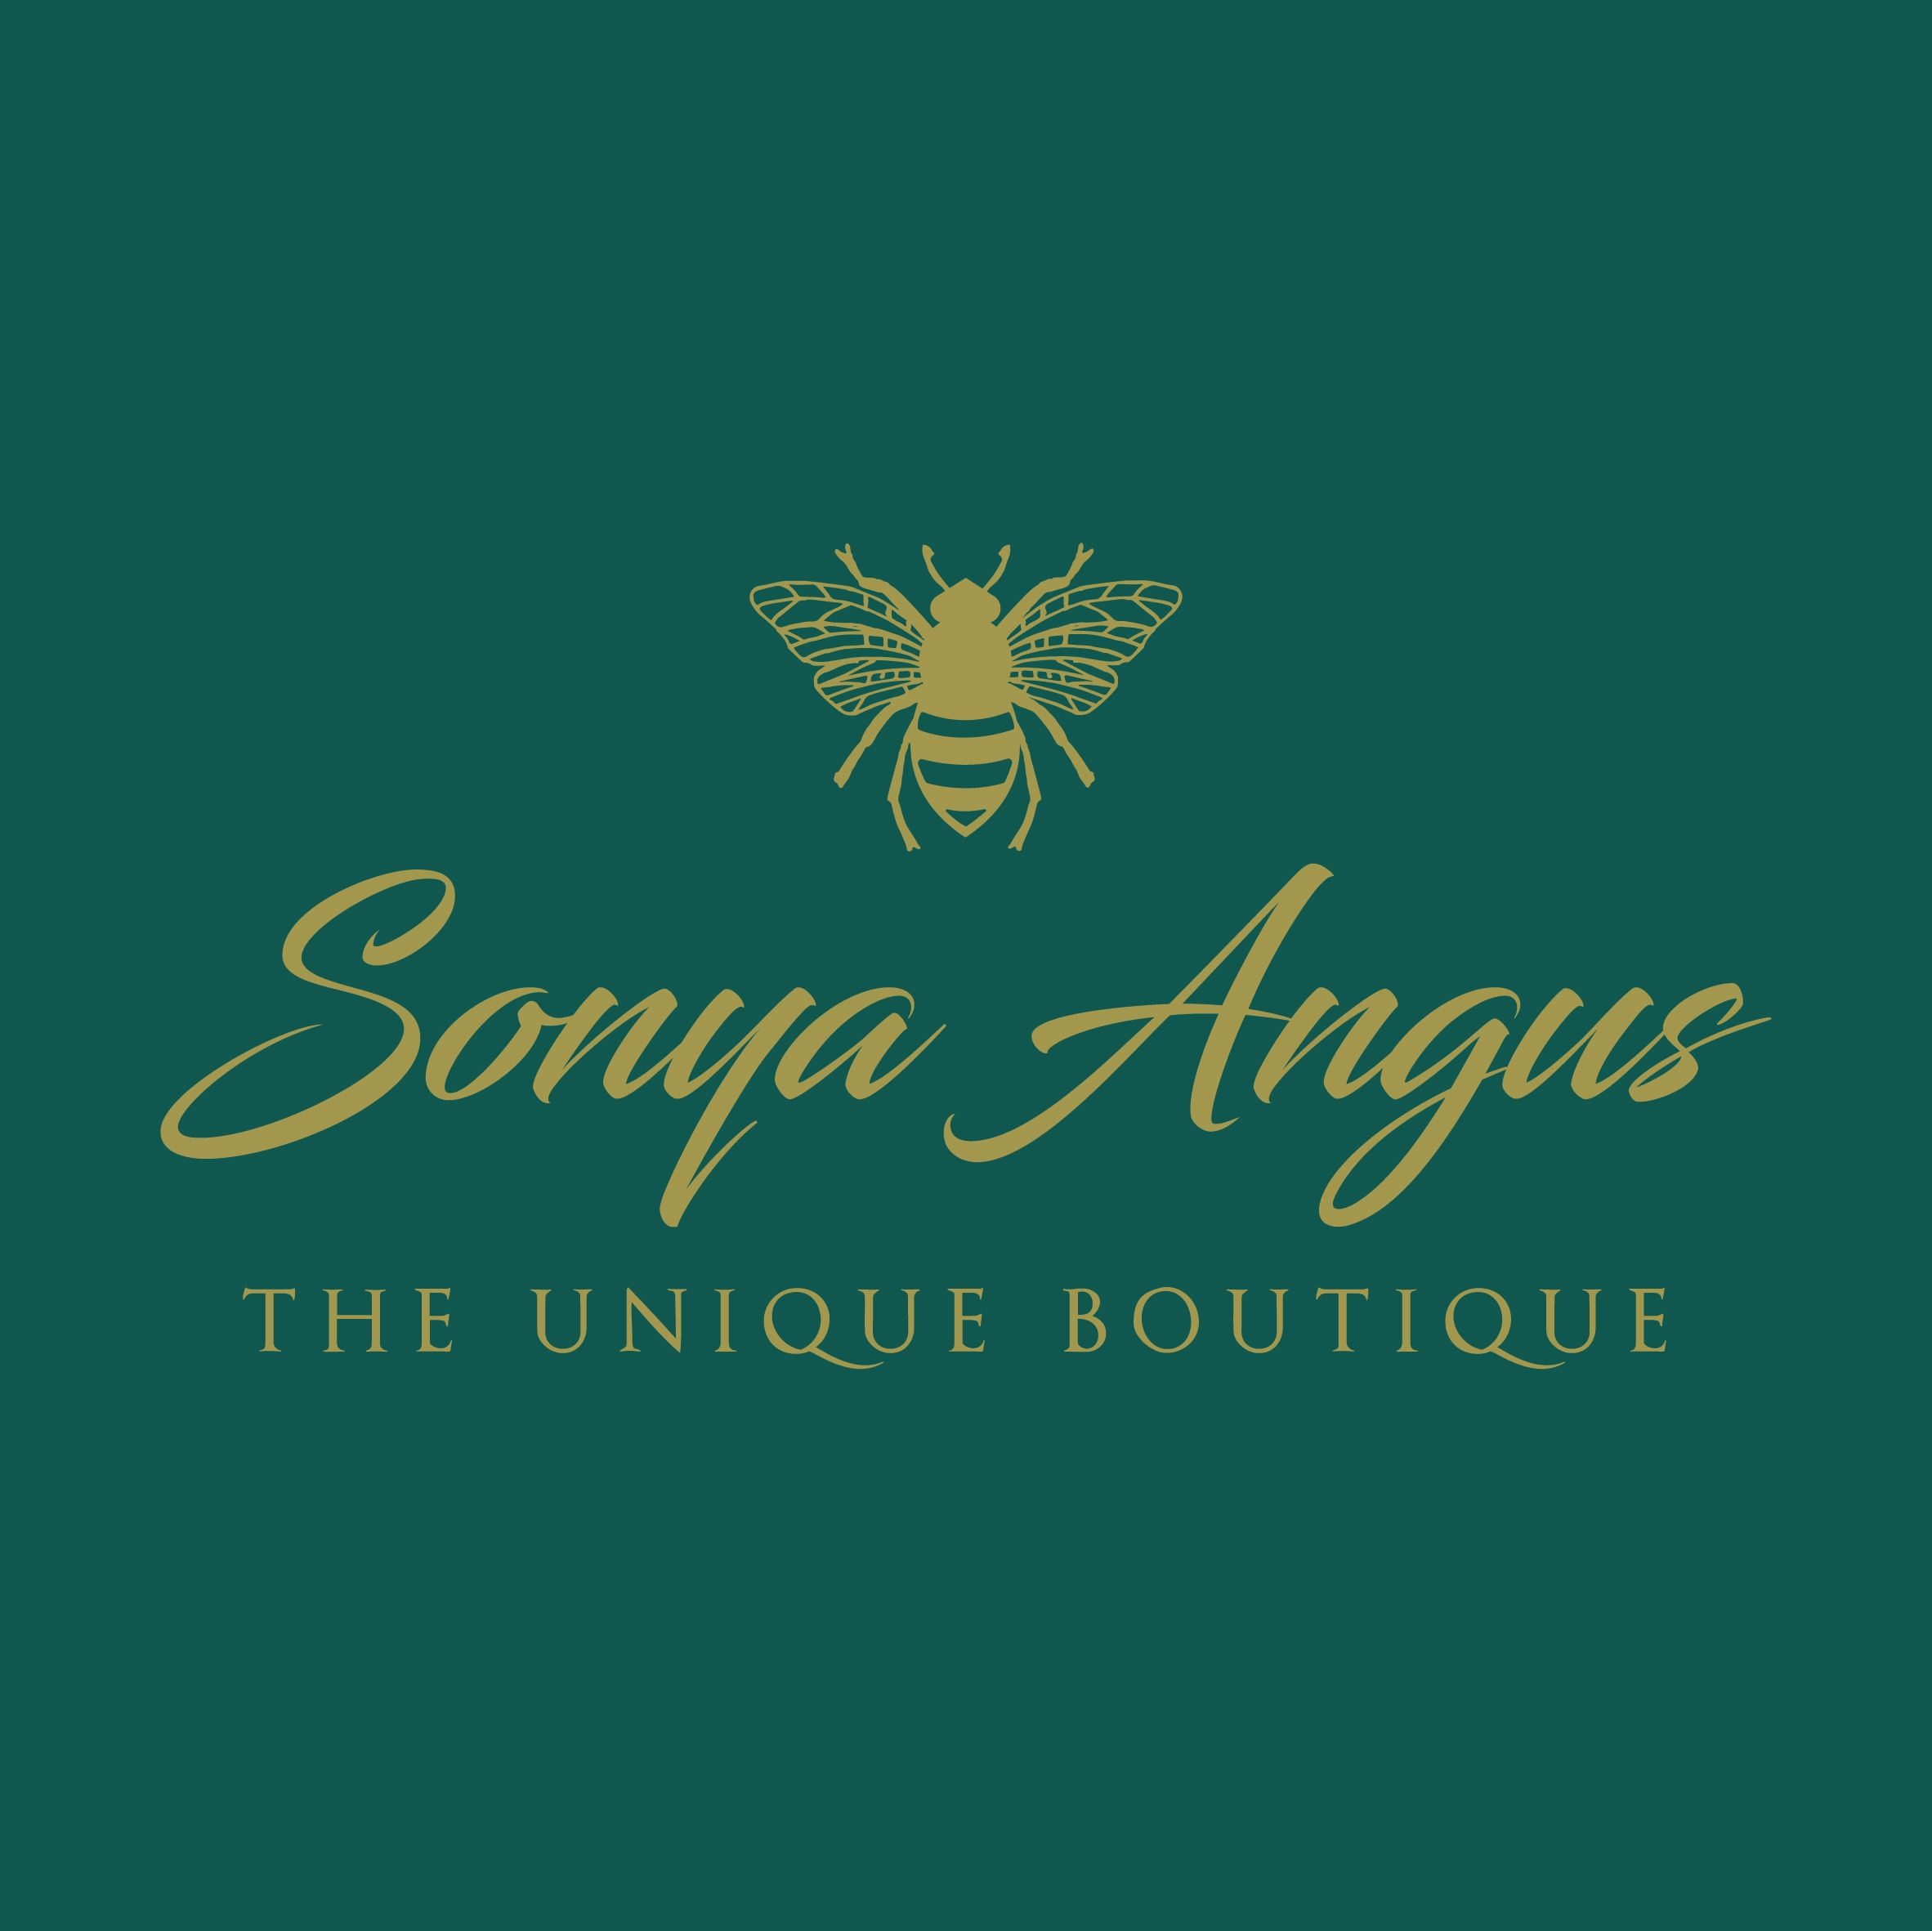 Sonya Angus: The Unique Boutique